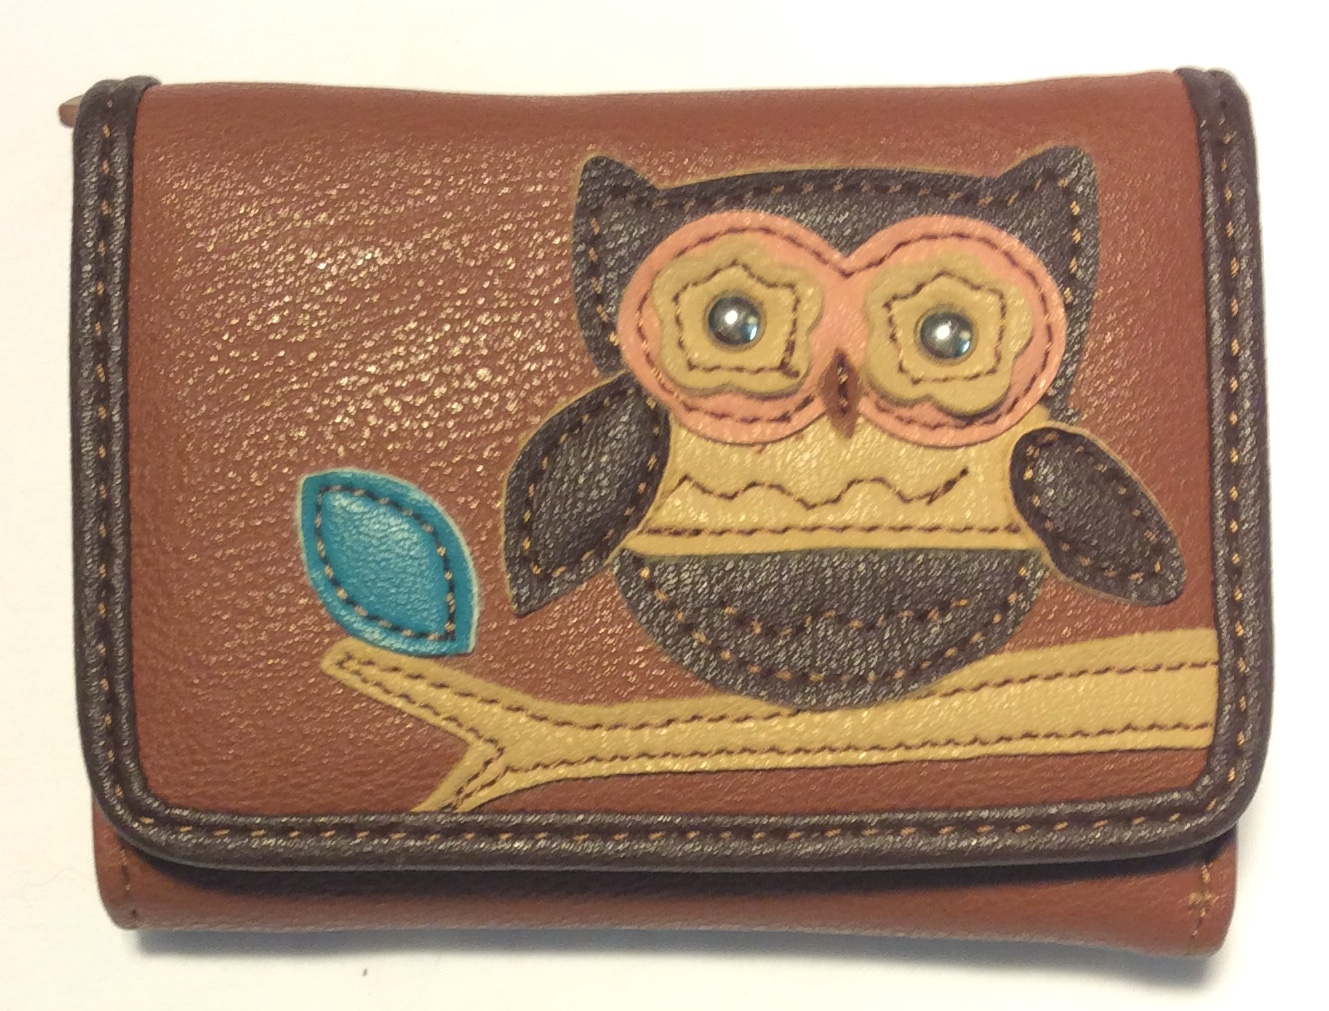 Light brown leather wallet with dark